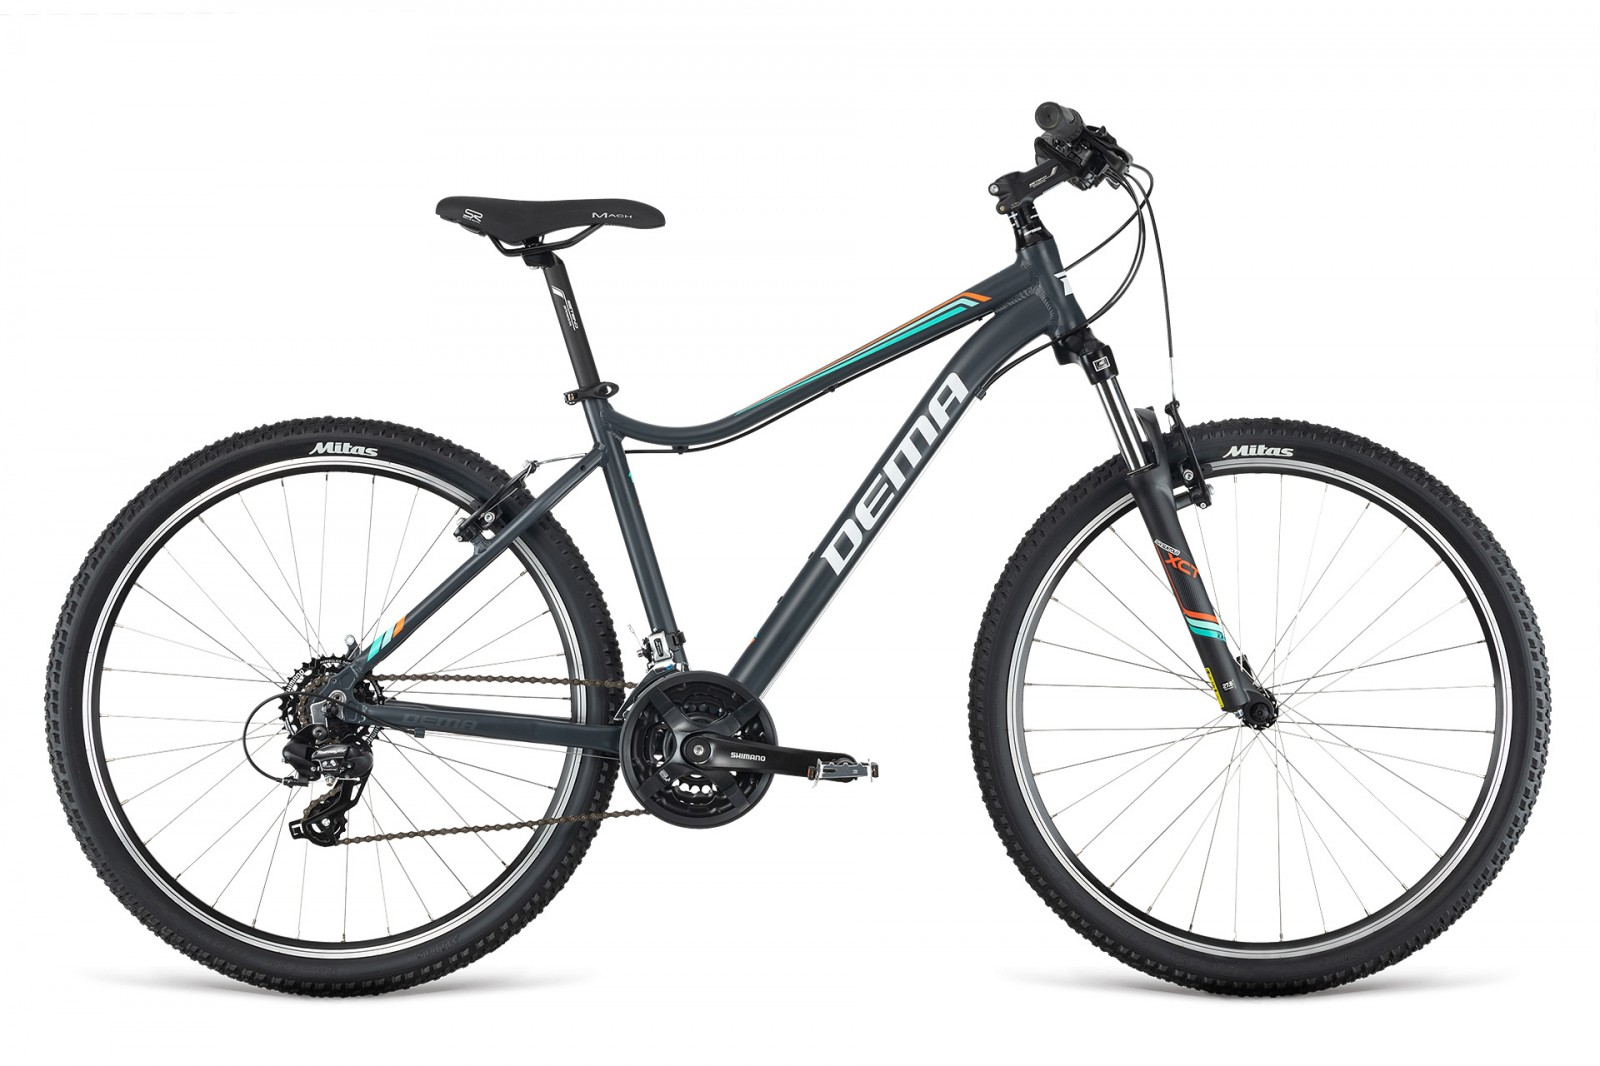 Dema TIGRA 3.0 Lady 2019 grey/white 27.5''